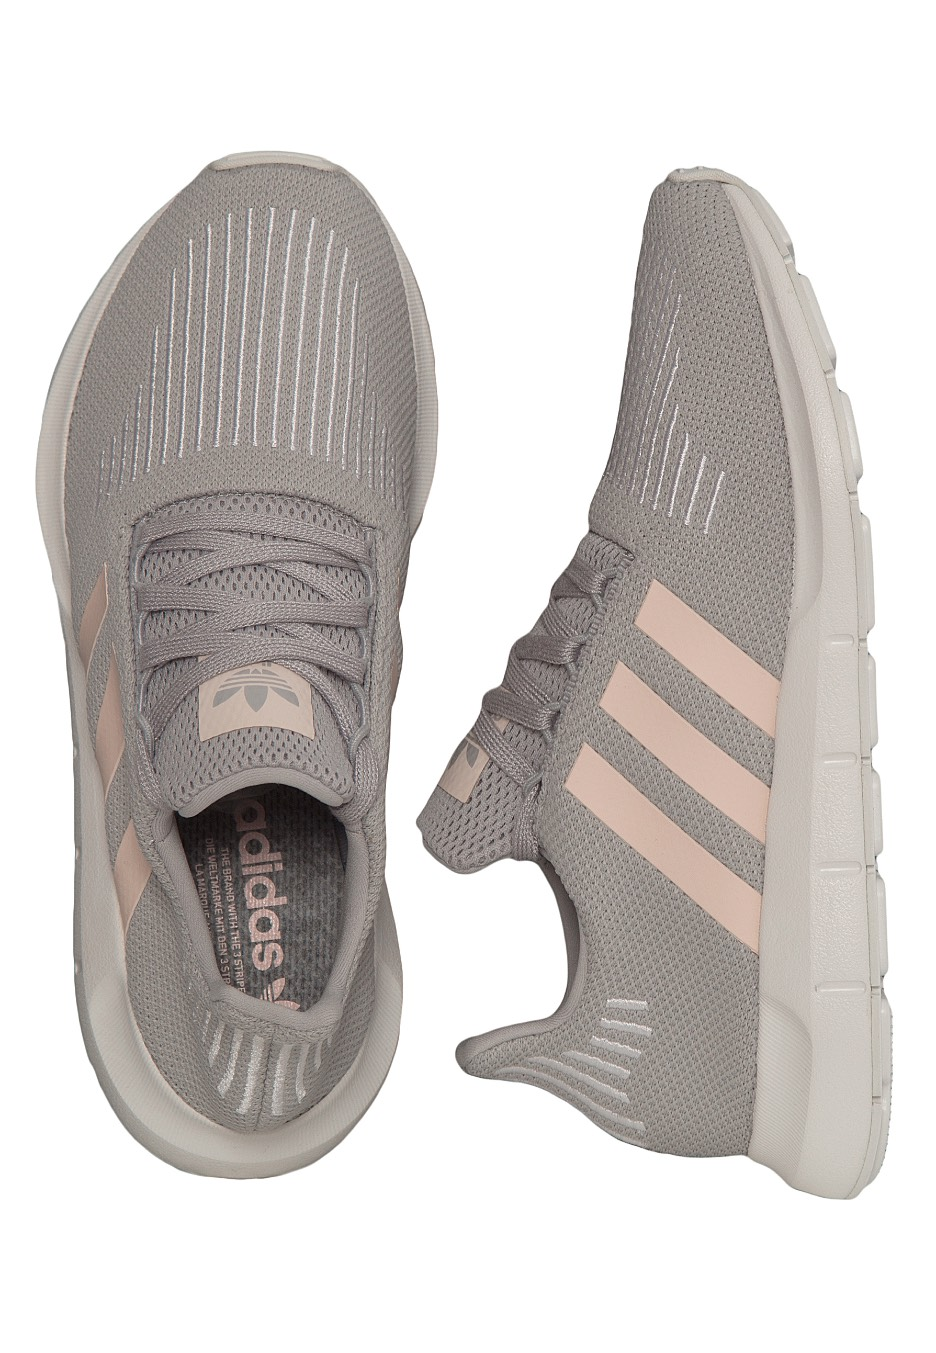 5b8aa163ac1 Adidas - Swift Run W Grey Two Icey Pink Ftwr White - Girl Shoes -  Impericon.com UK